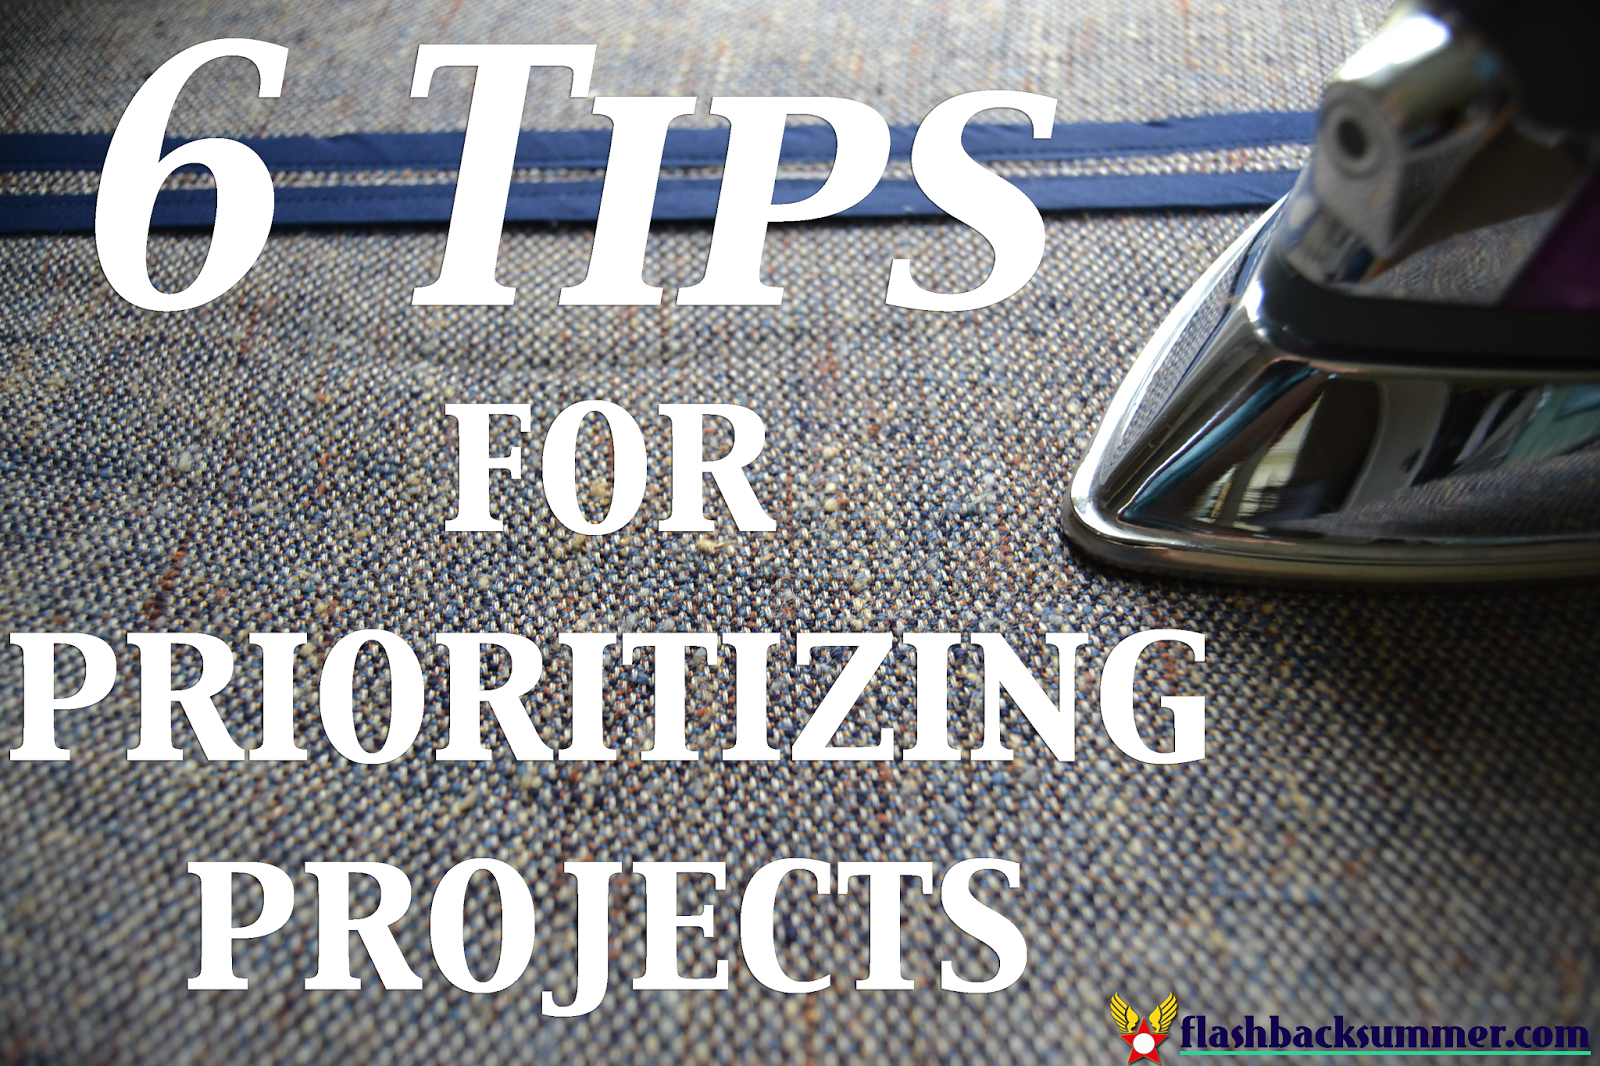 Flashback Summer: 6 Tips for Prioritizing Projects